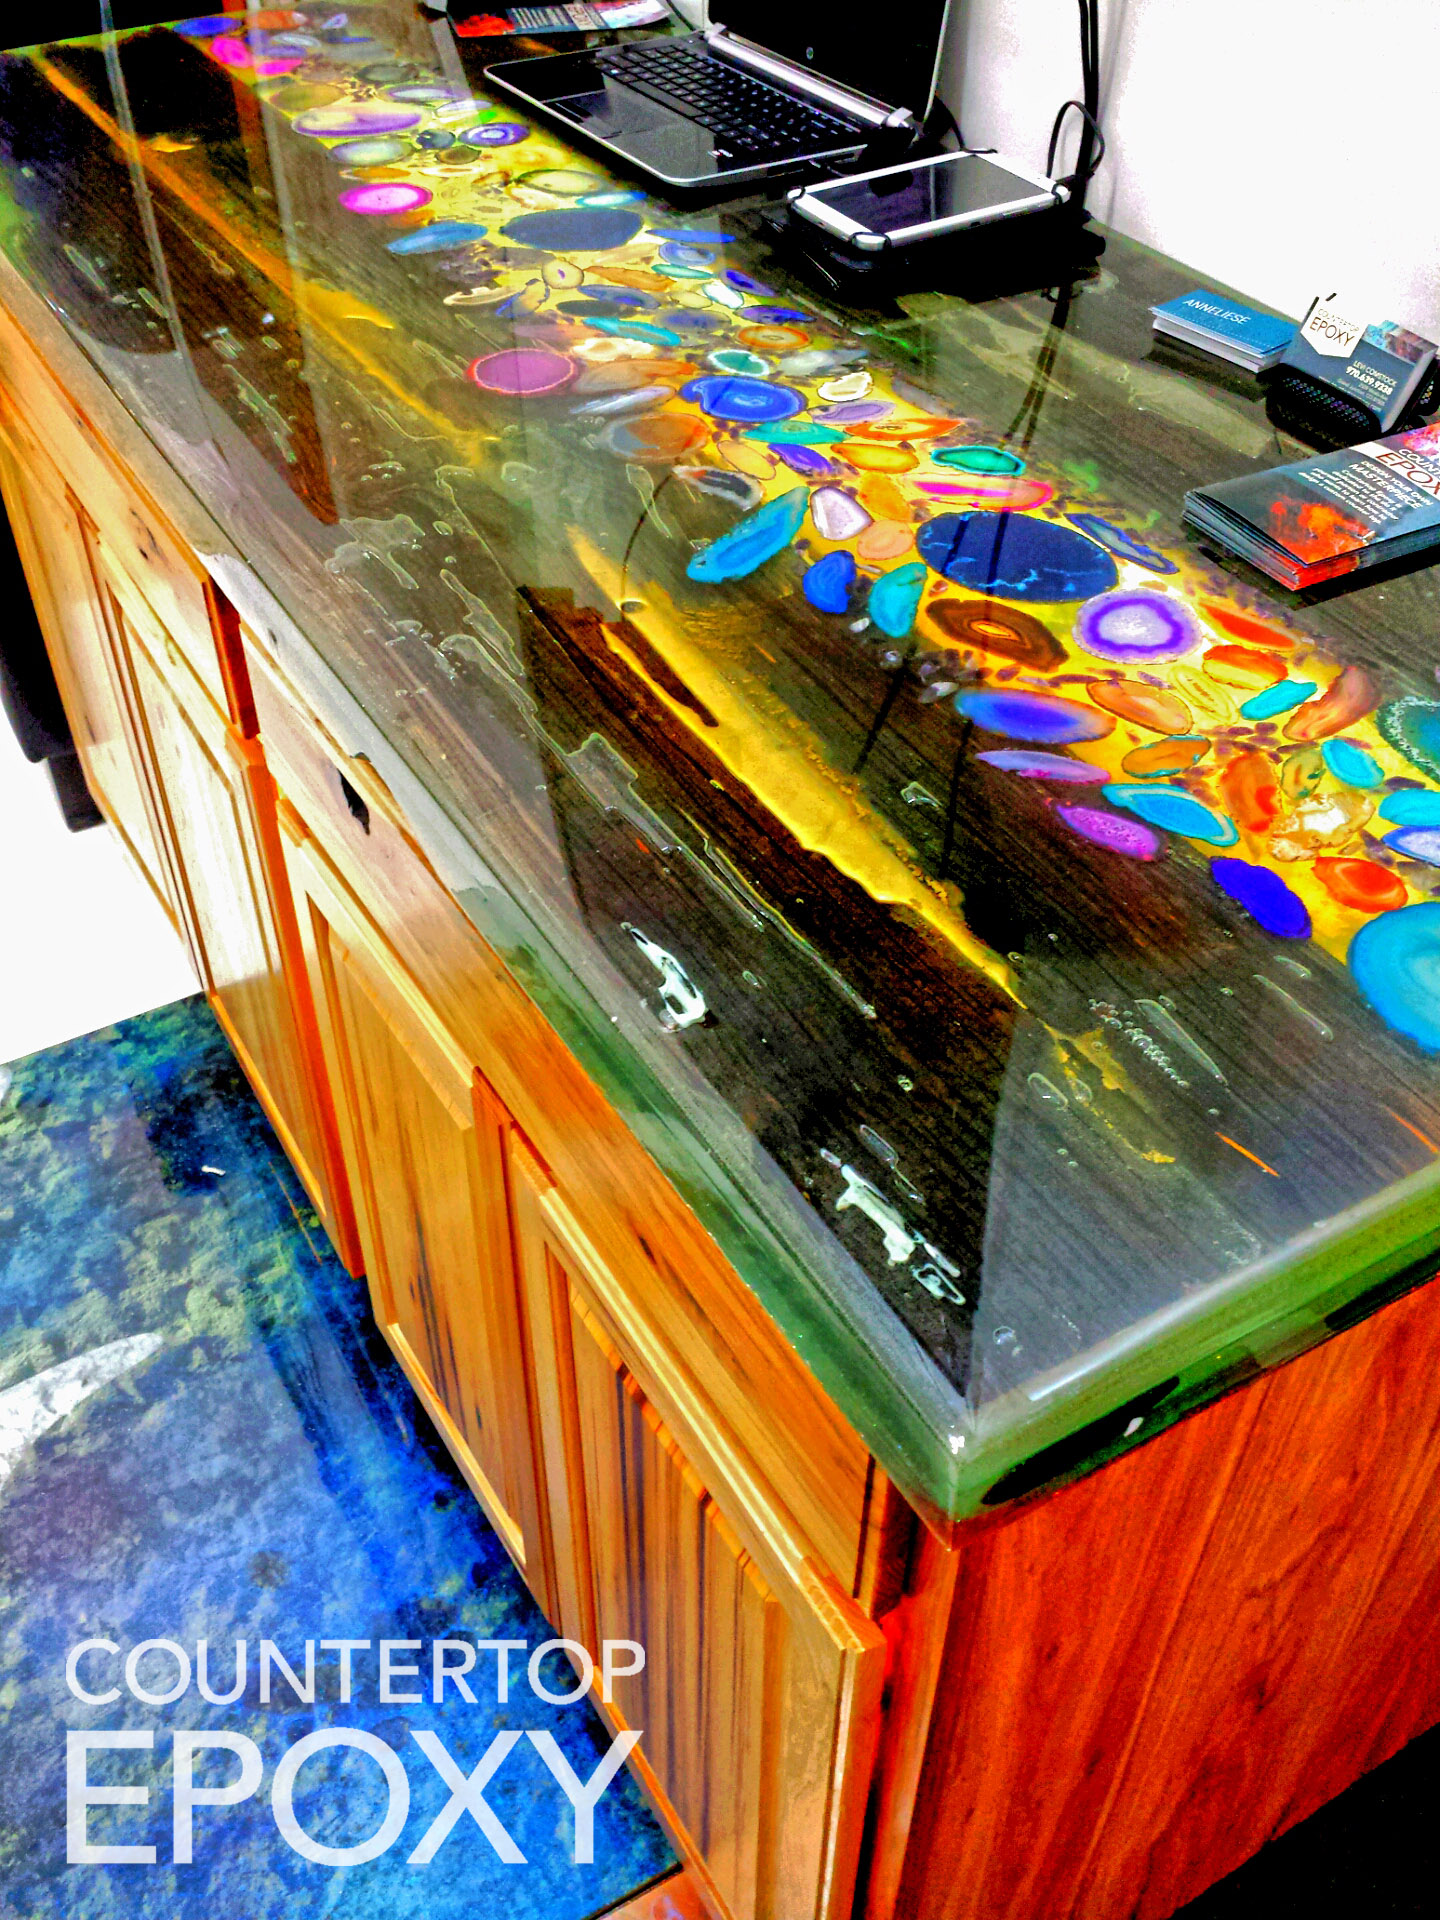 FX Poxy countertop epoxy over old wood and polished stone agates with led light backing